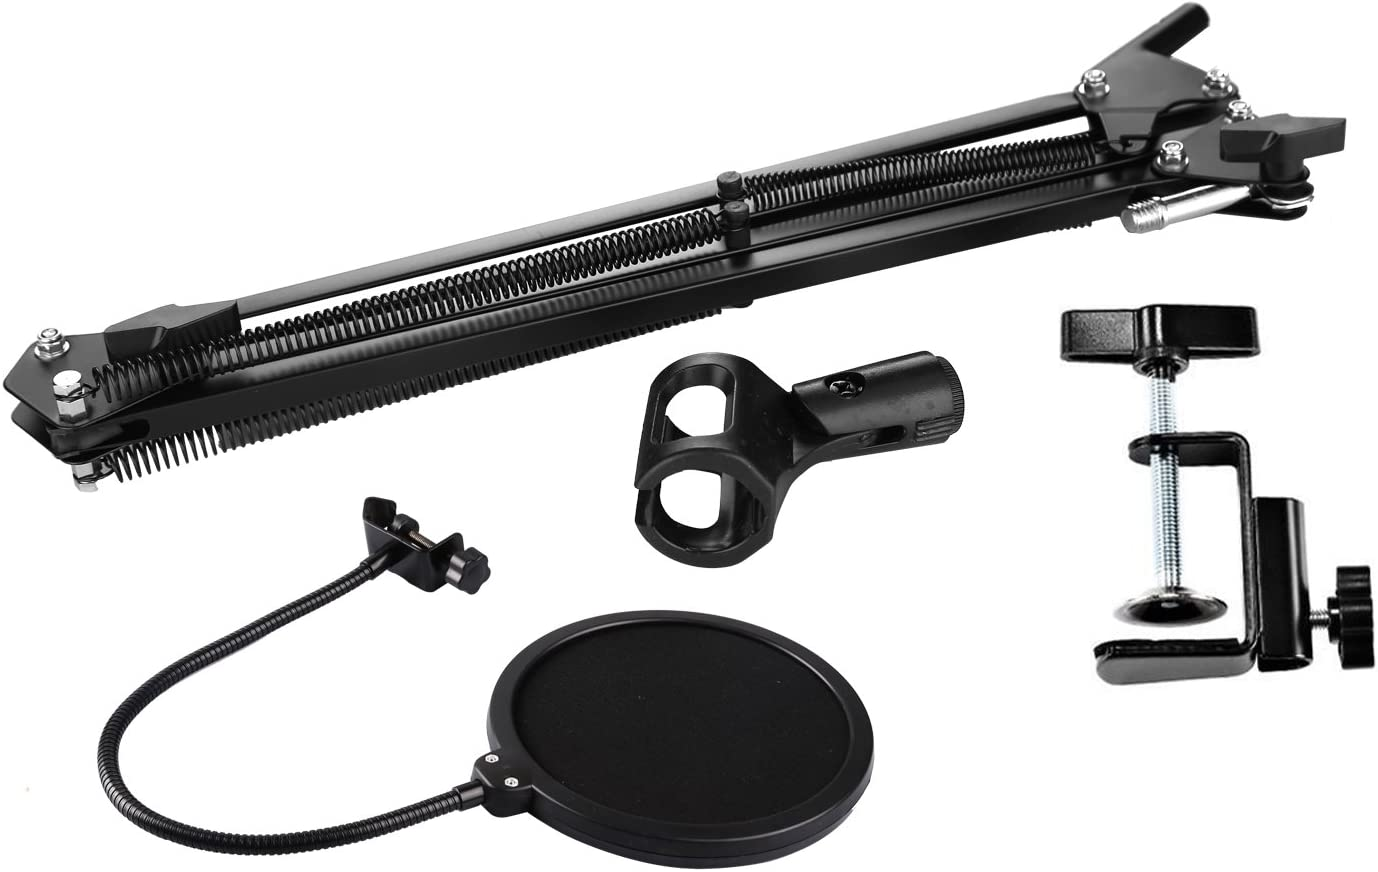 B-Qtech Set of Microphone Suspension Boom Scissor Arm and Pop Filter Desktop Mounted Stand for Music Recording Studio Broadcasting